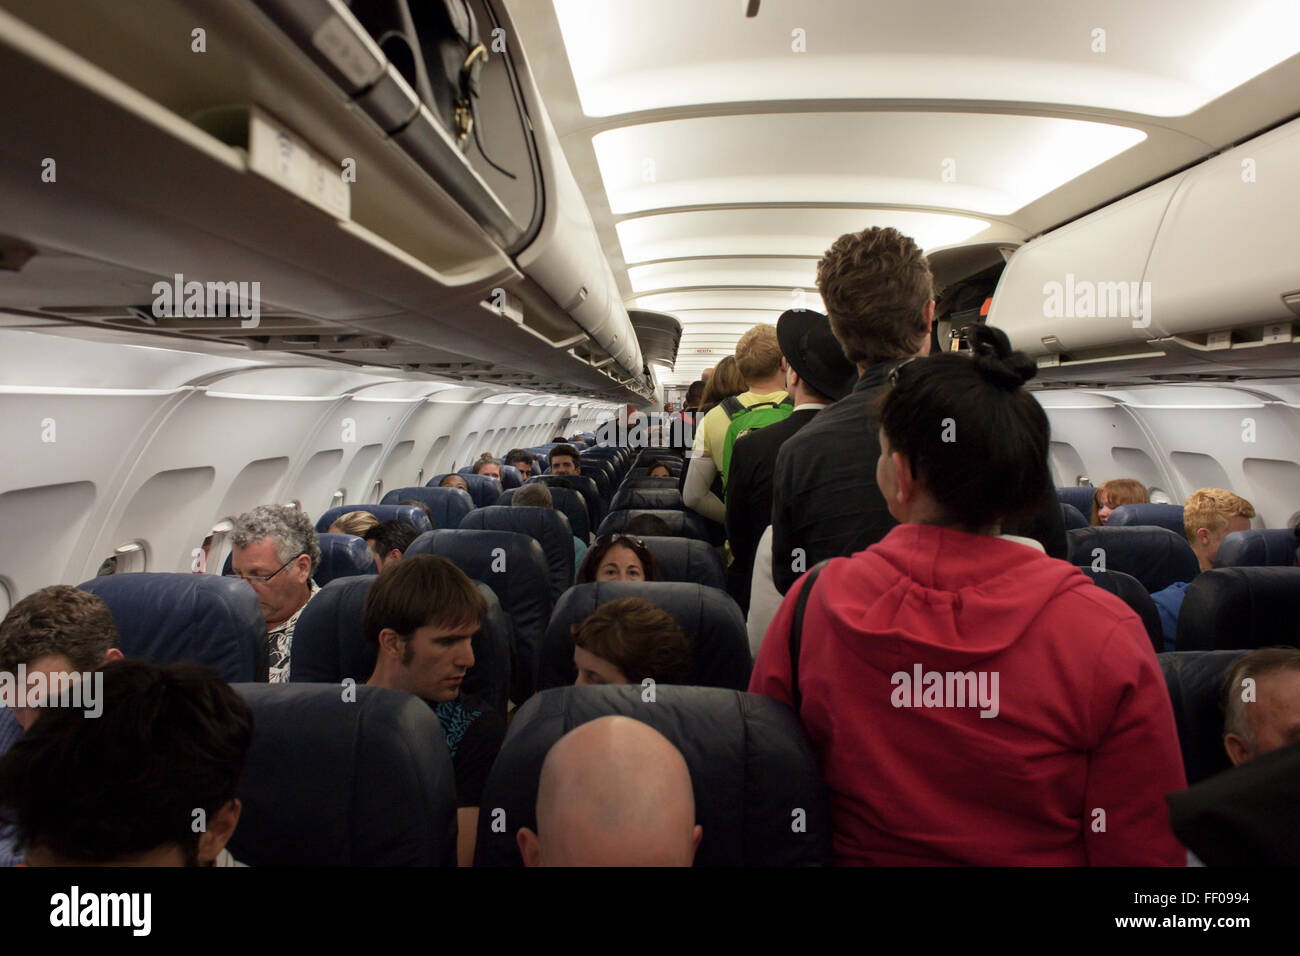 Passengers Boarding Airplane Passengers Boarding Airplane - Stock Image